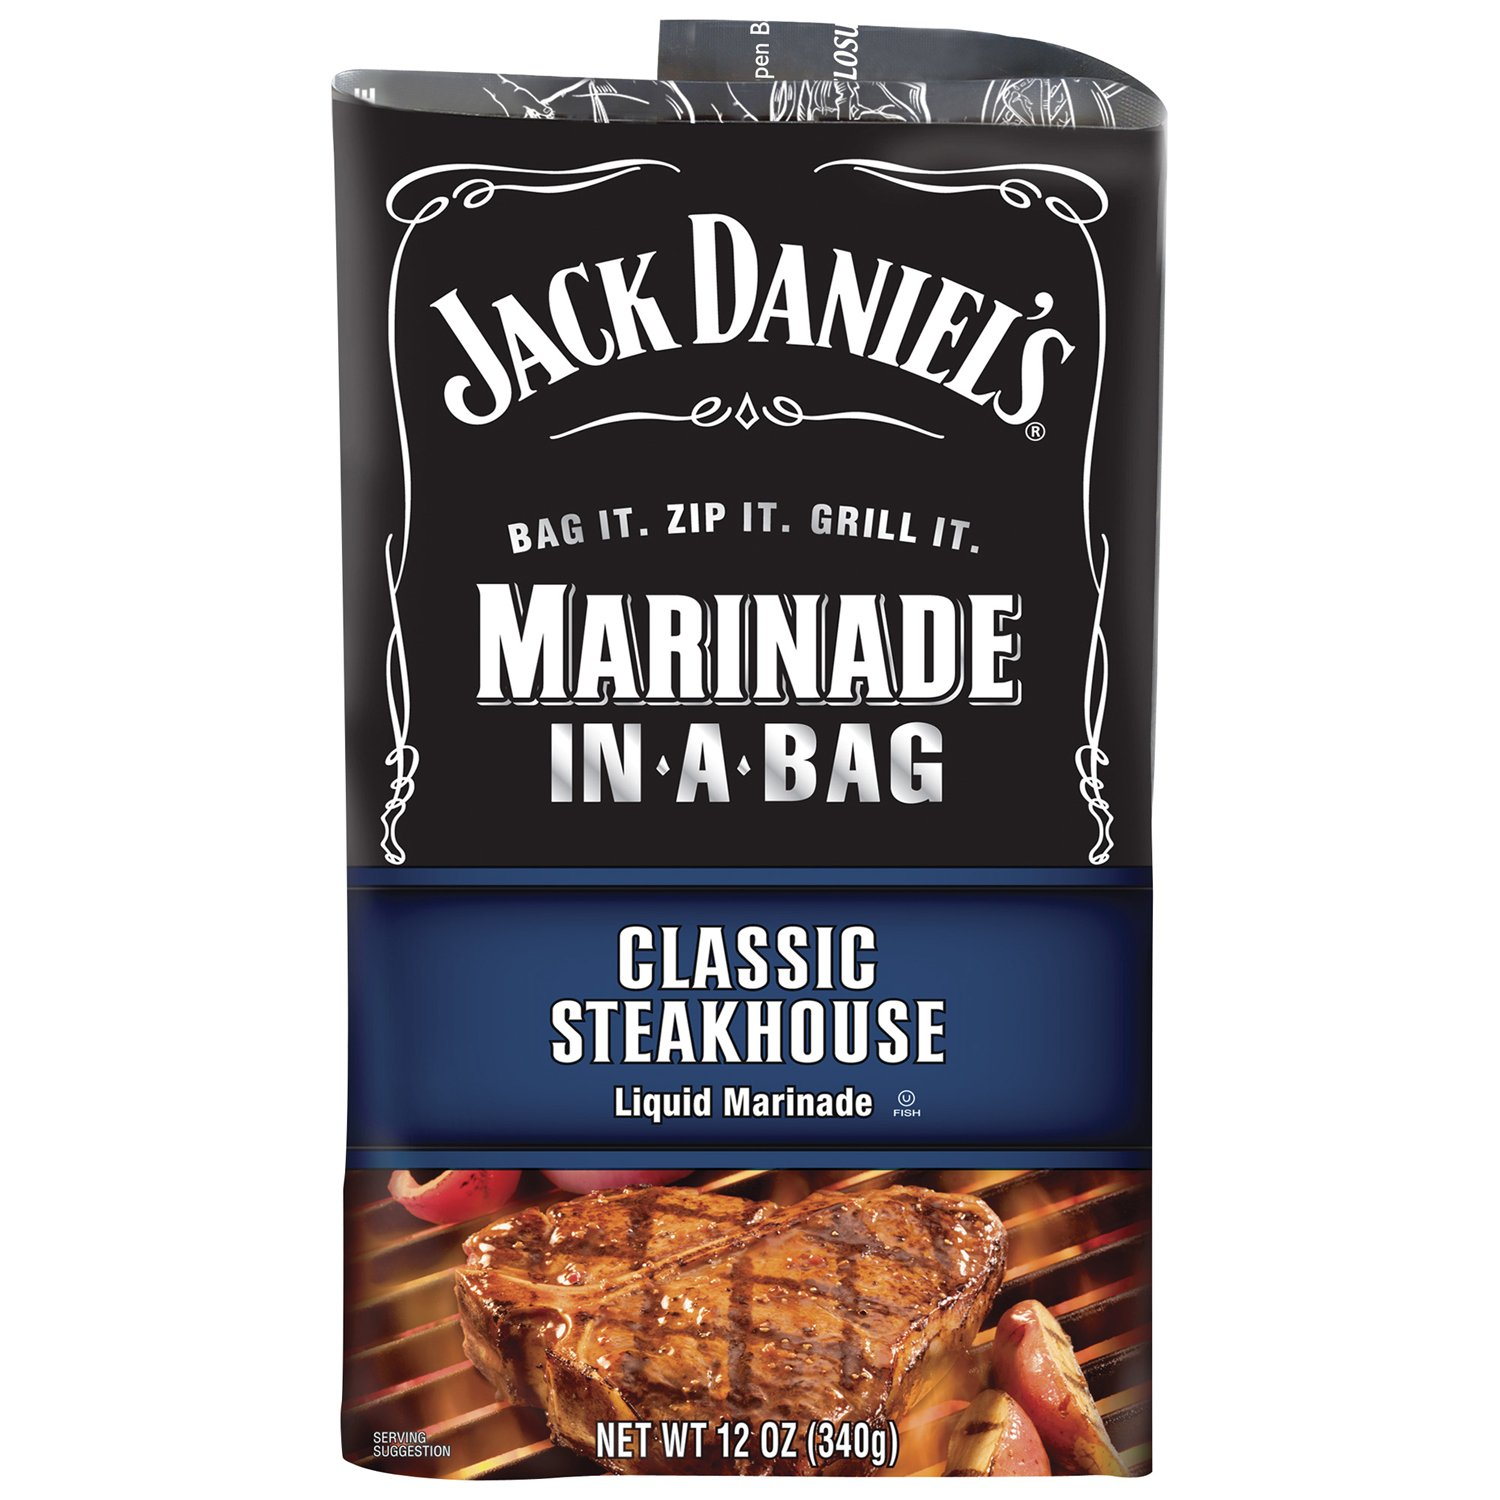 Jack Daniels Marinade In-A-Bag, Classic Steakhouse, 12 Ounce (Pack